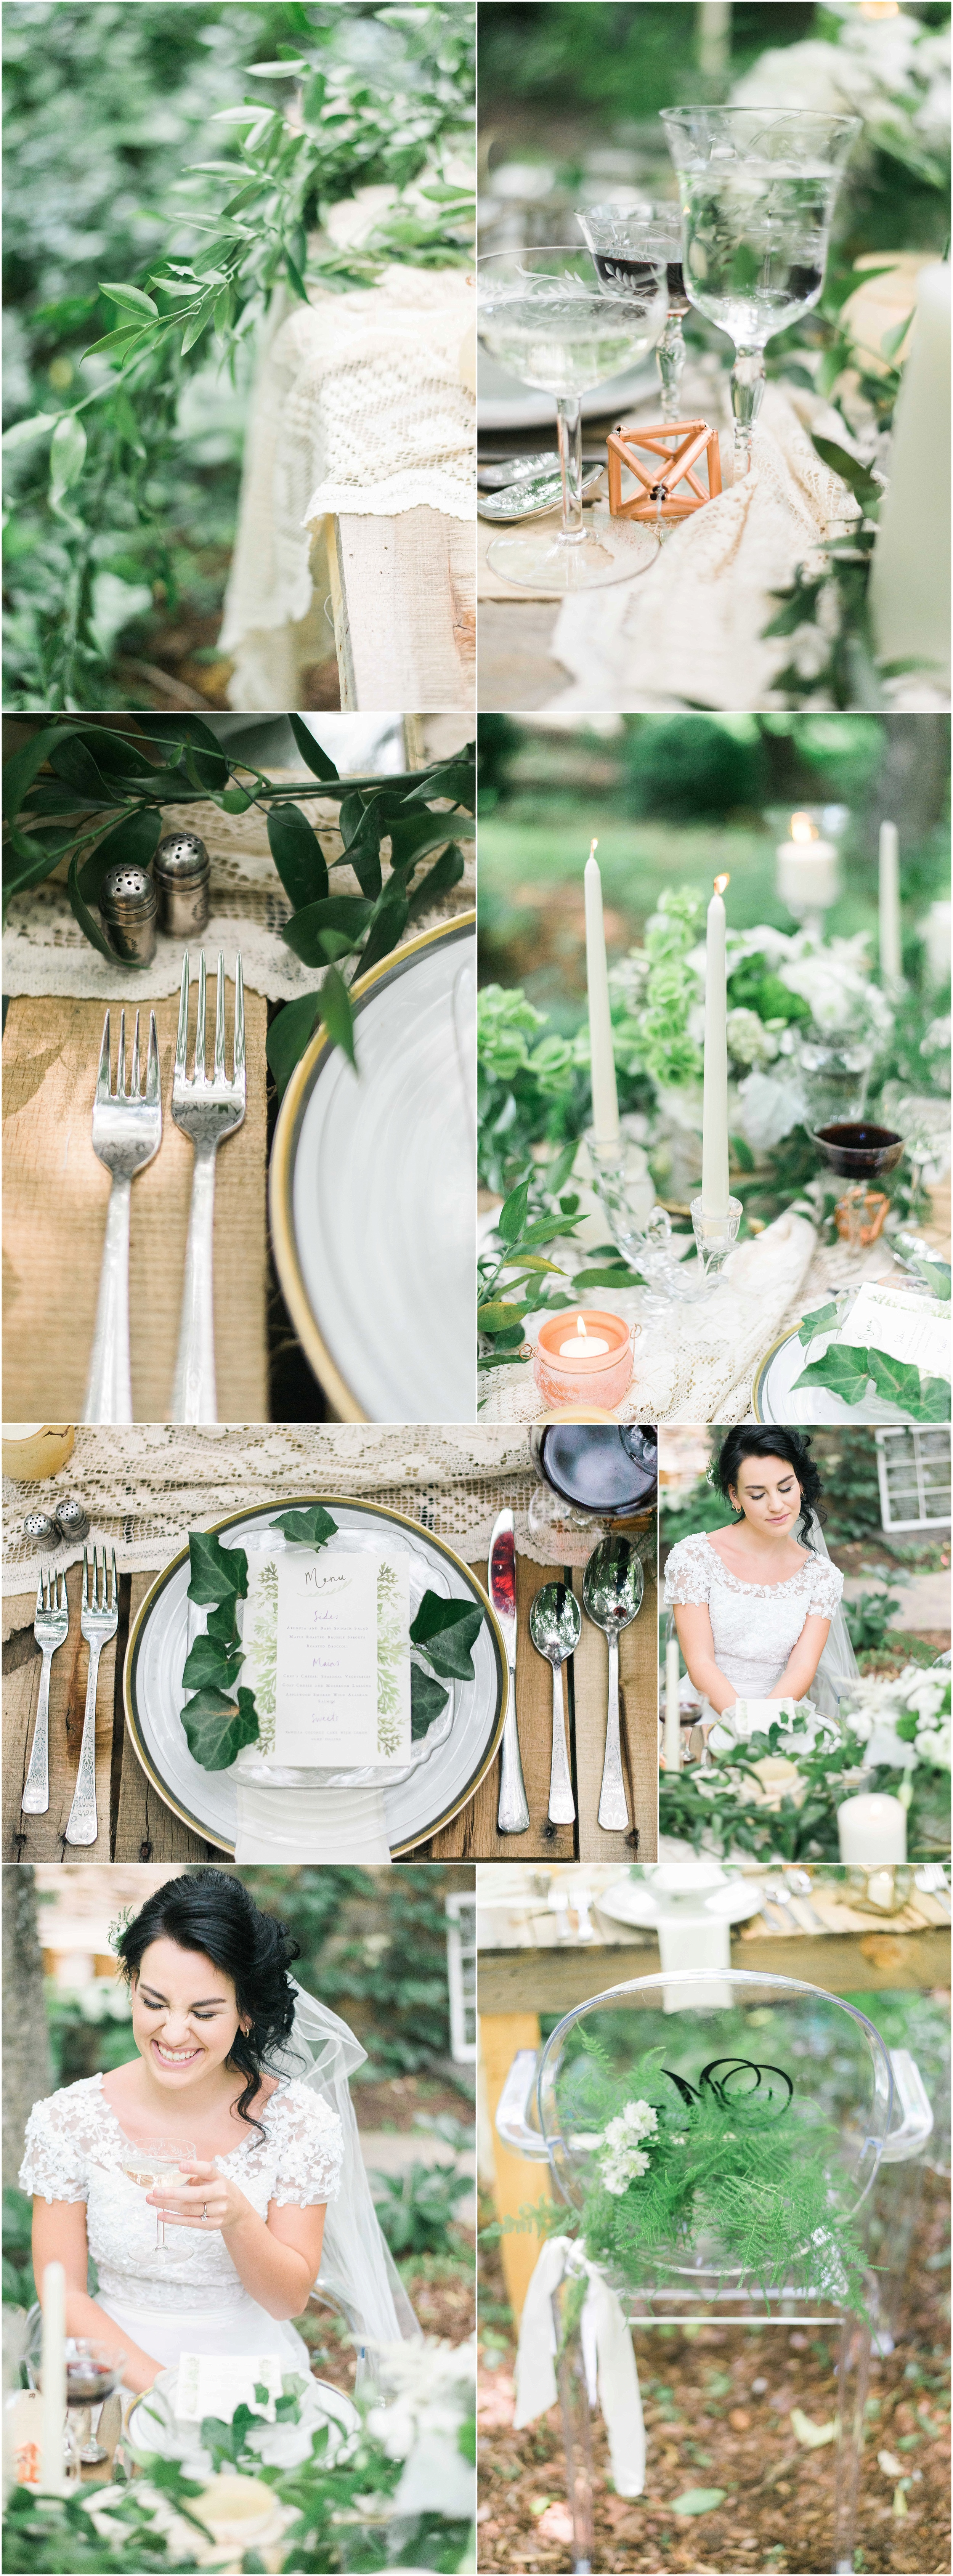 charlottesville_wedding Photographer_styled shoot_Style Me Pretty Feature5